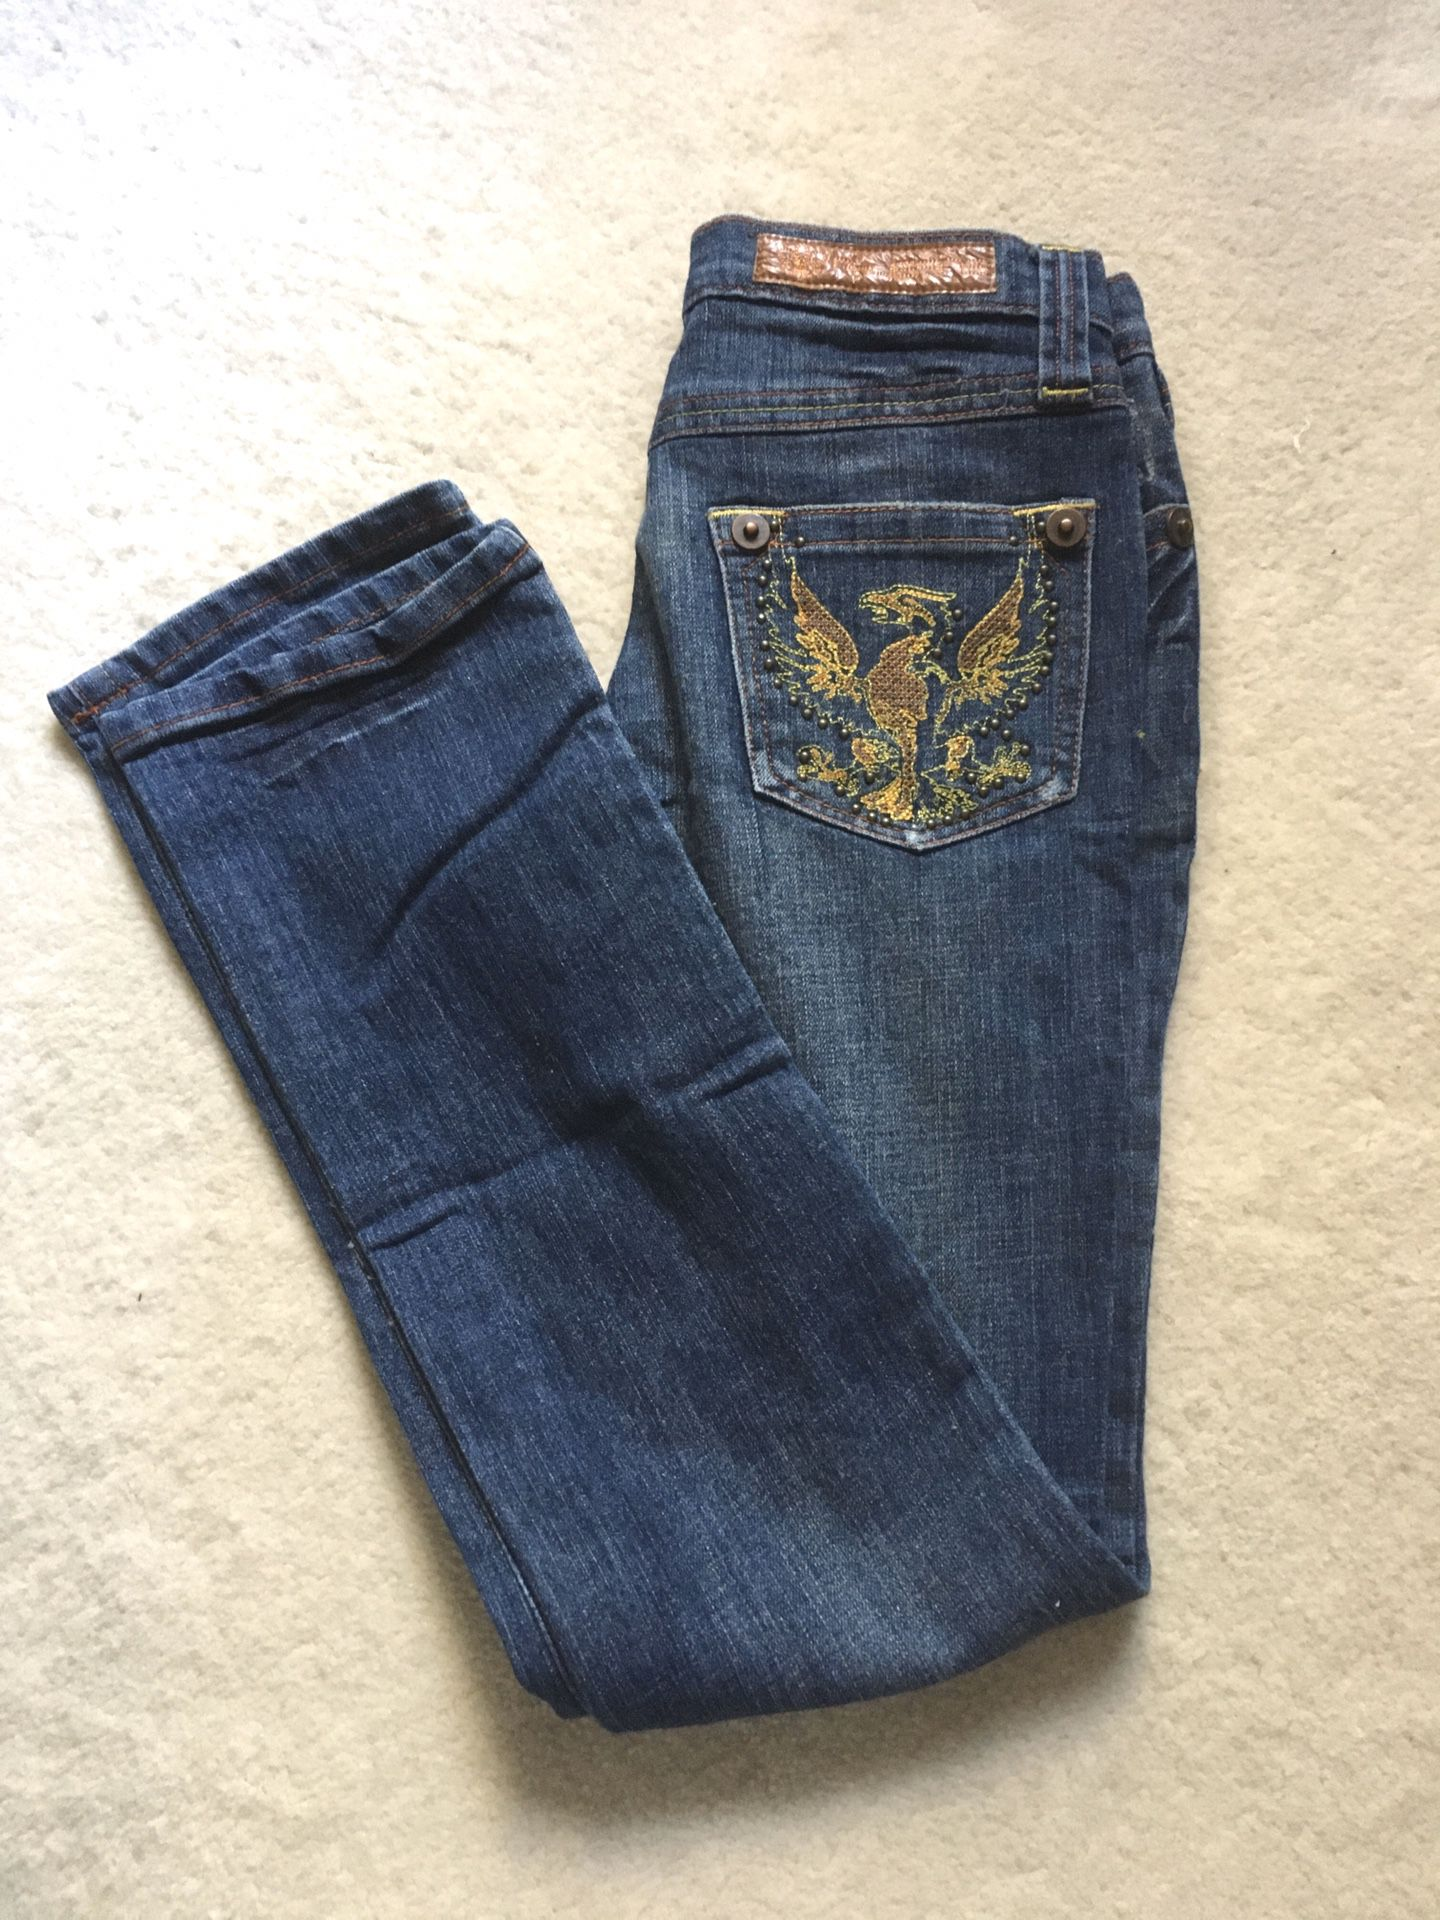 A-Jeans Size 3